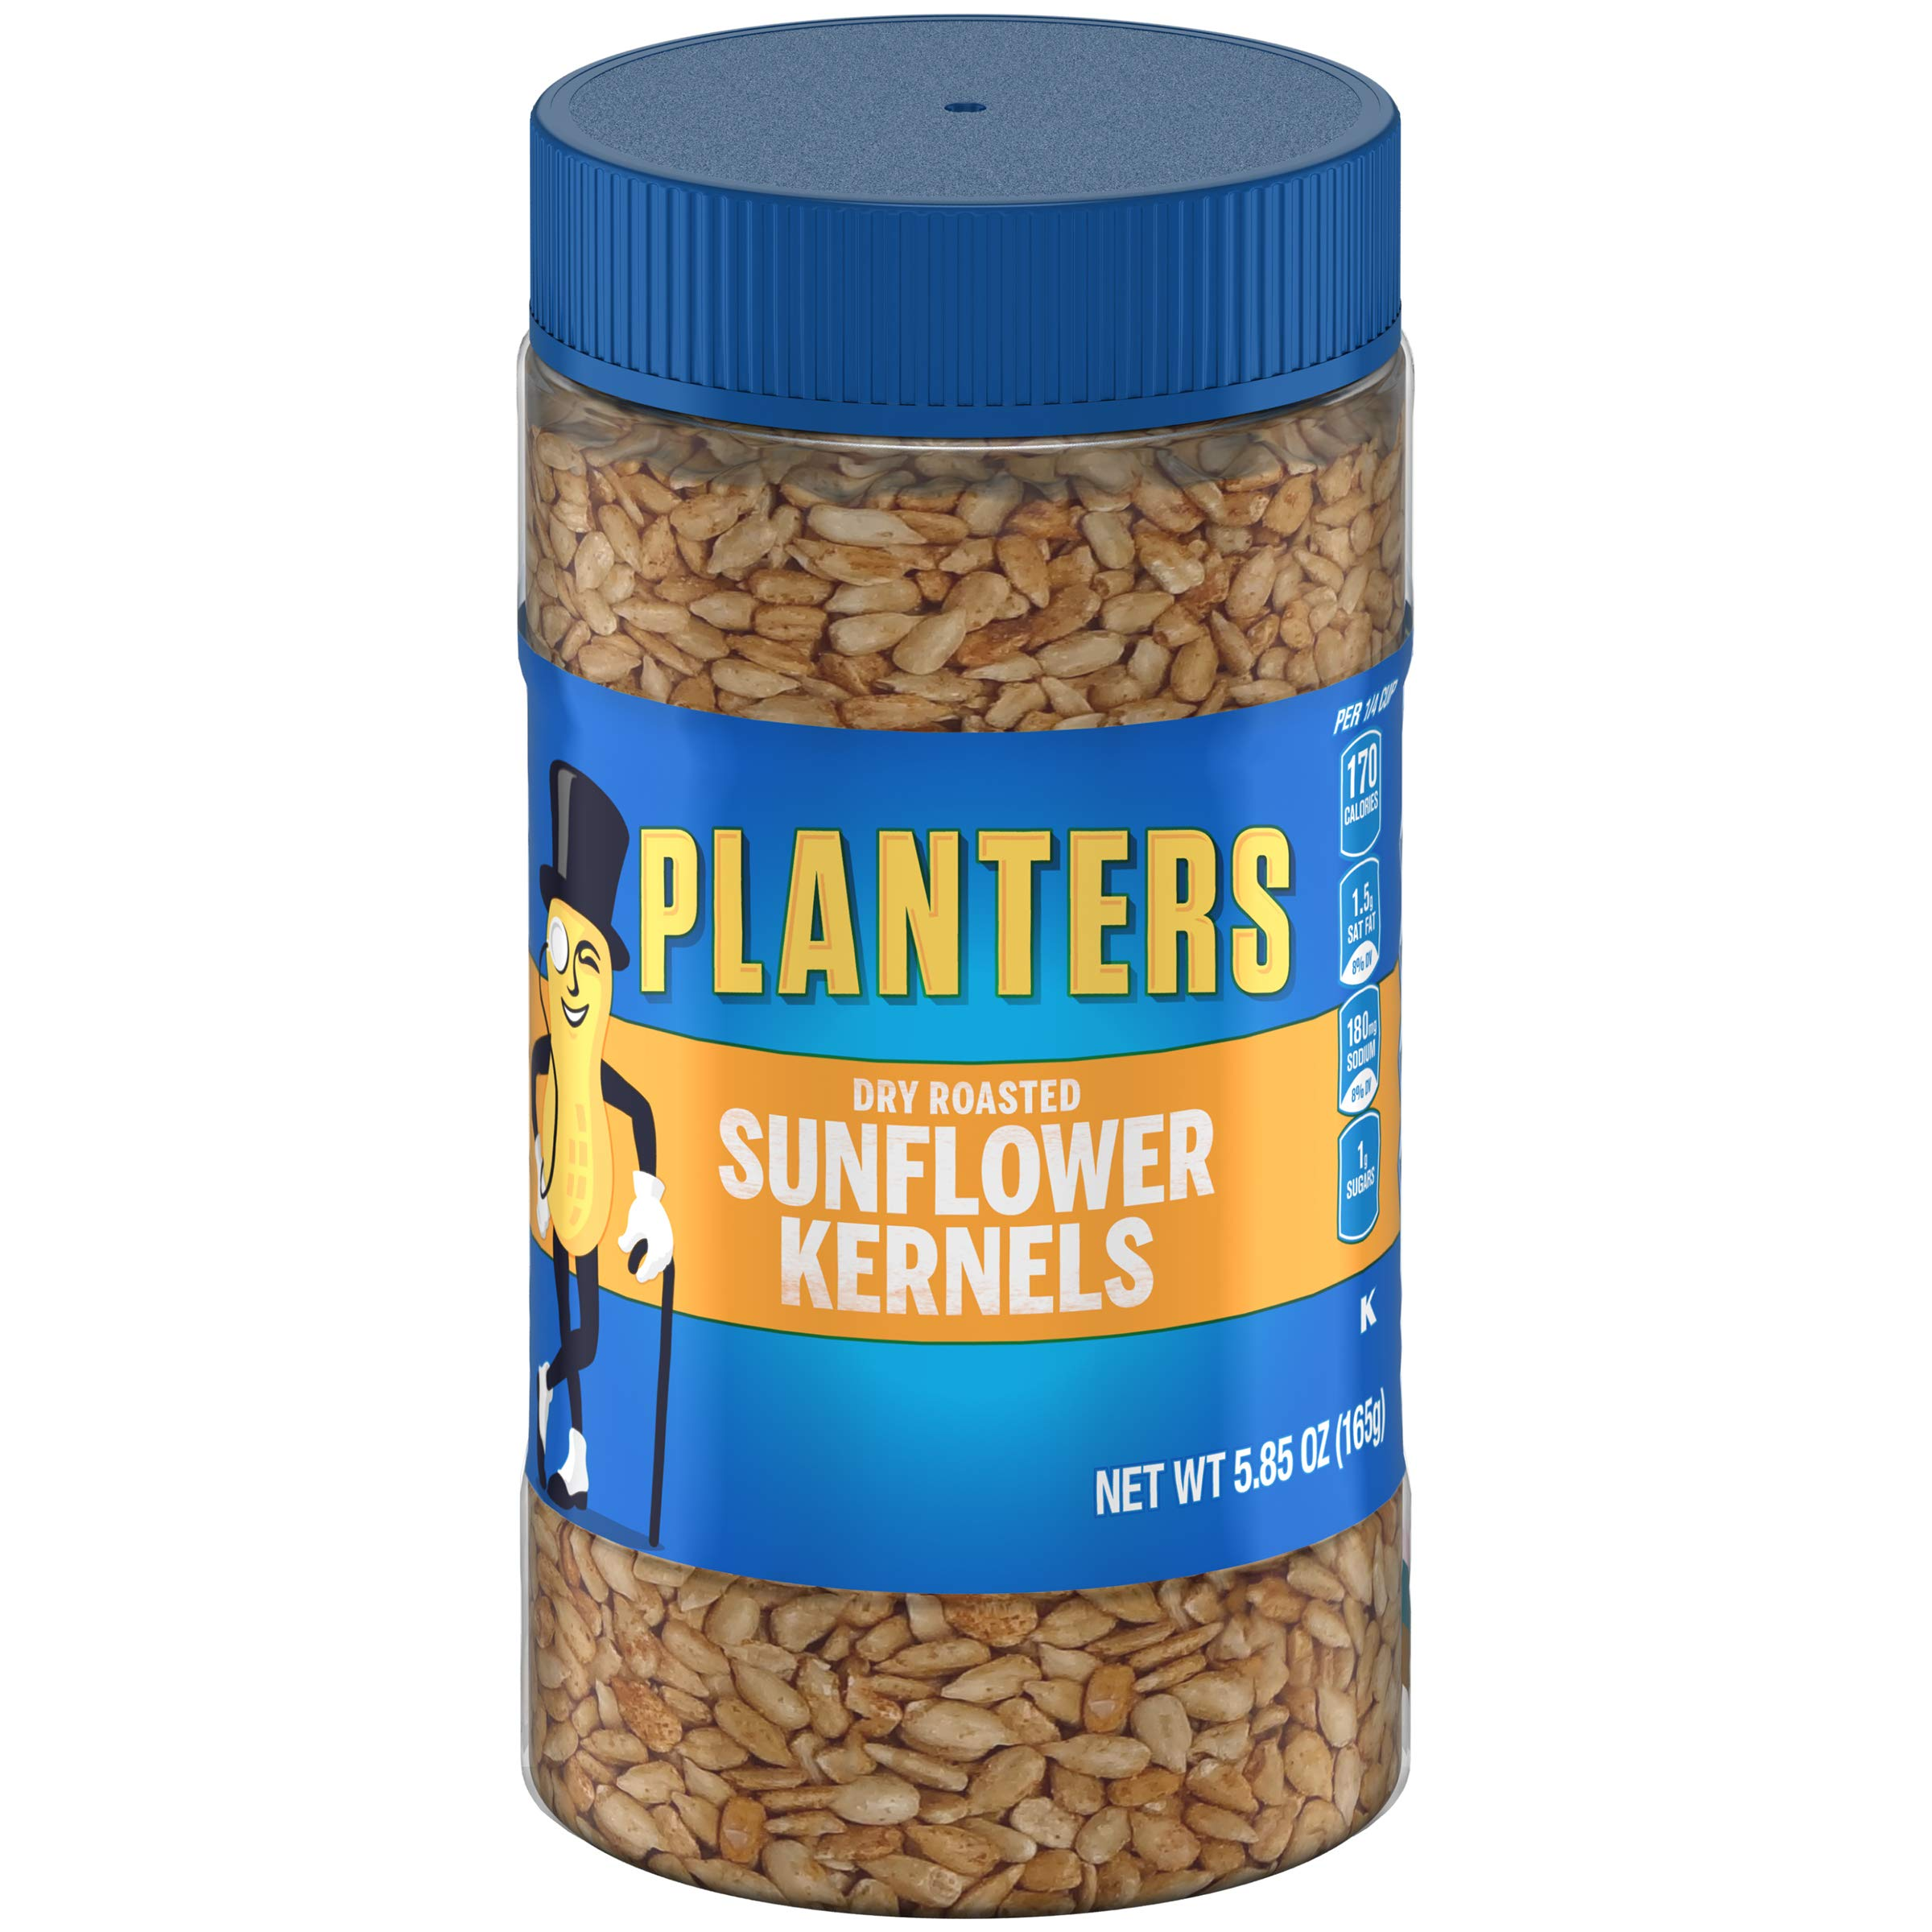 Planters Dry Roasted Sunflower Kernels (5.85 oz Canisters, Pack of 12) by Planters